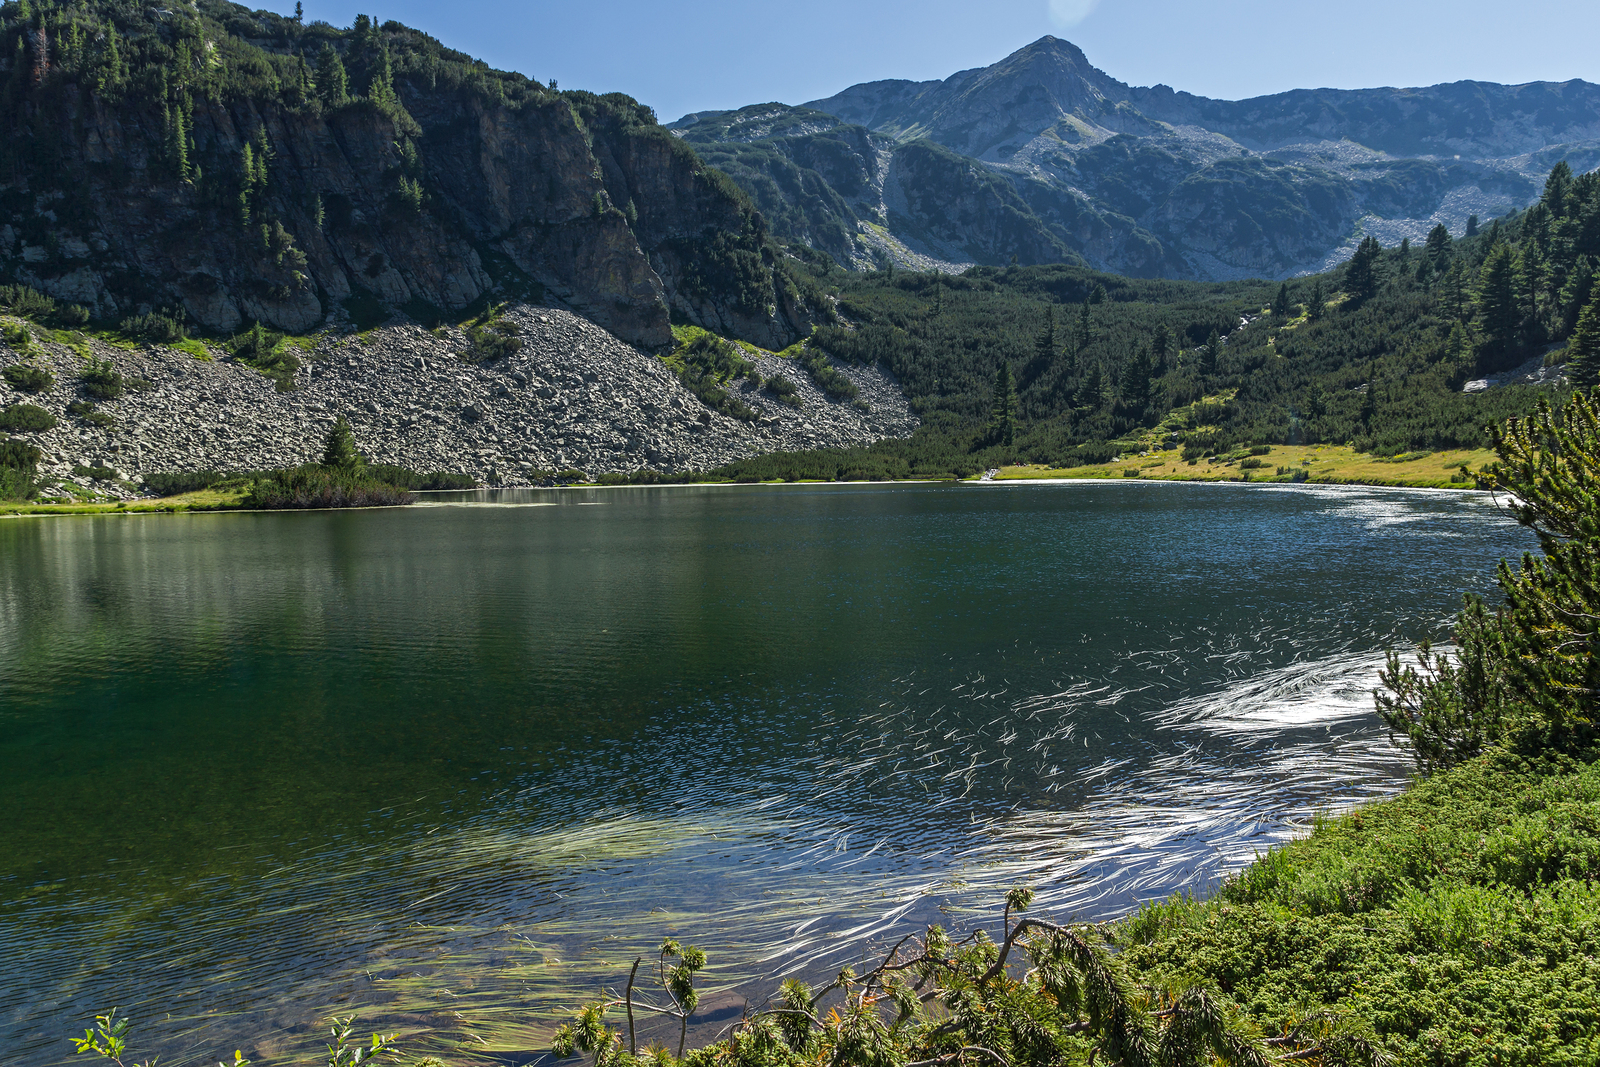 Bulgaria's Pirin National Park saved from destruction, for now